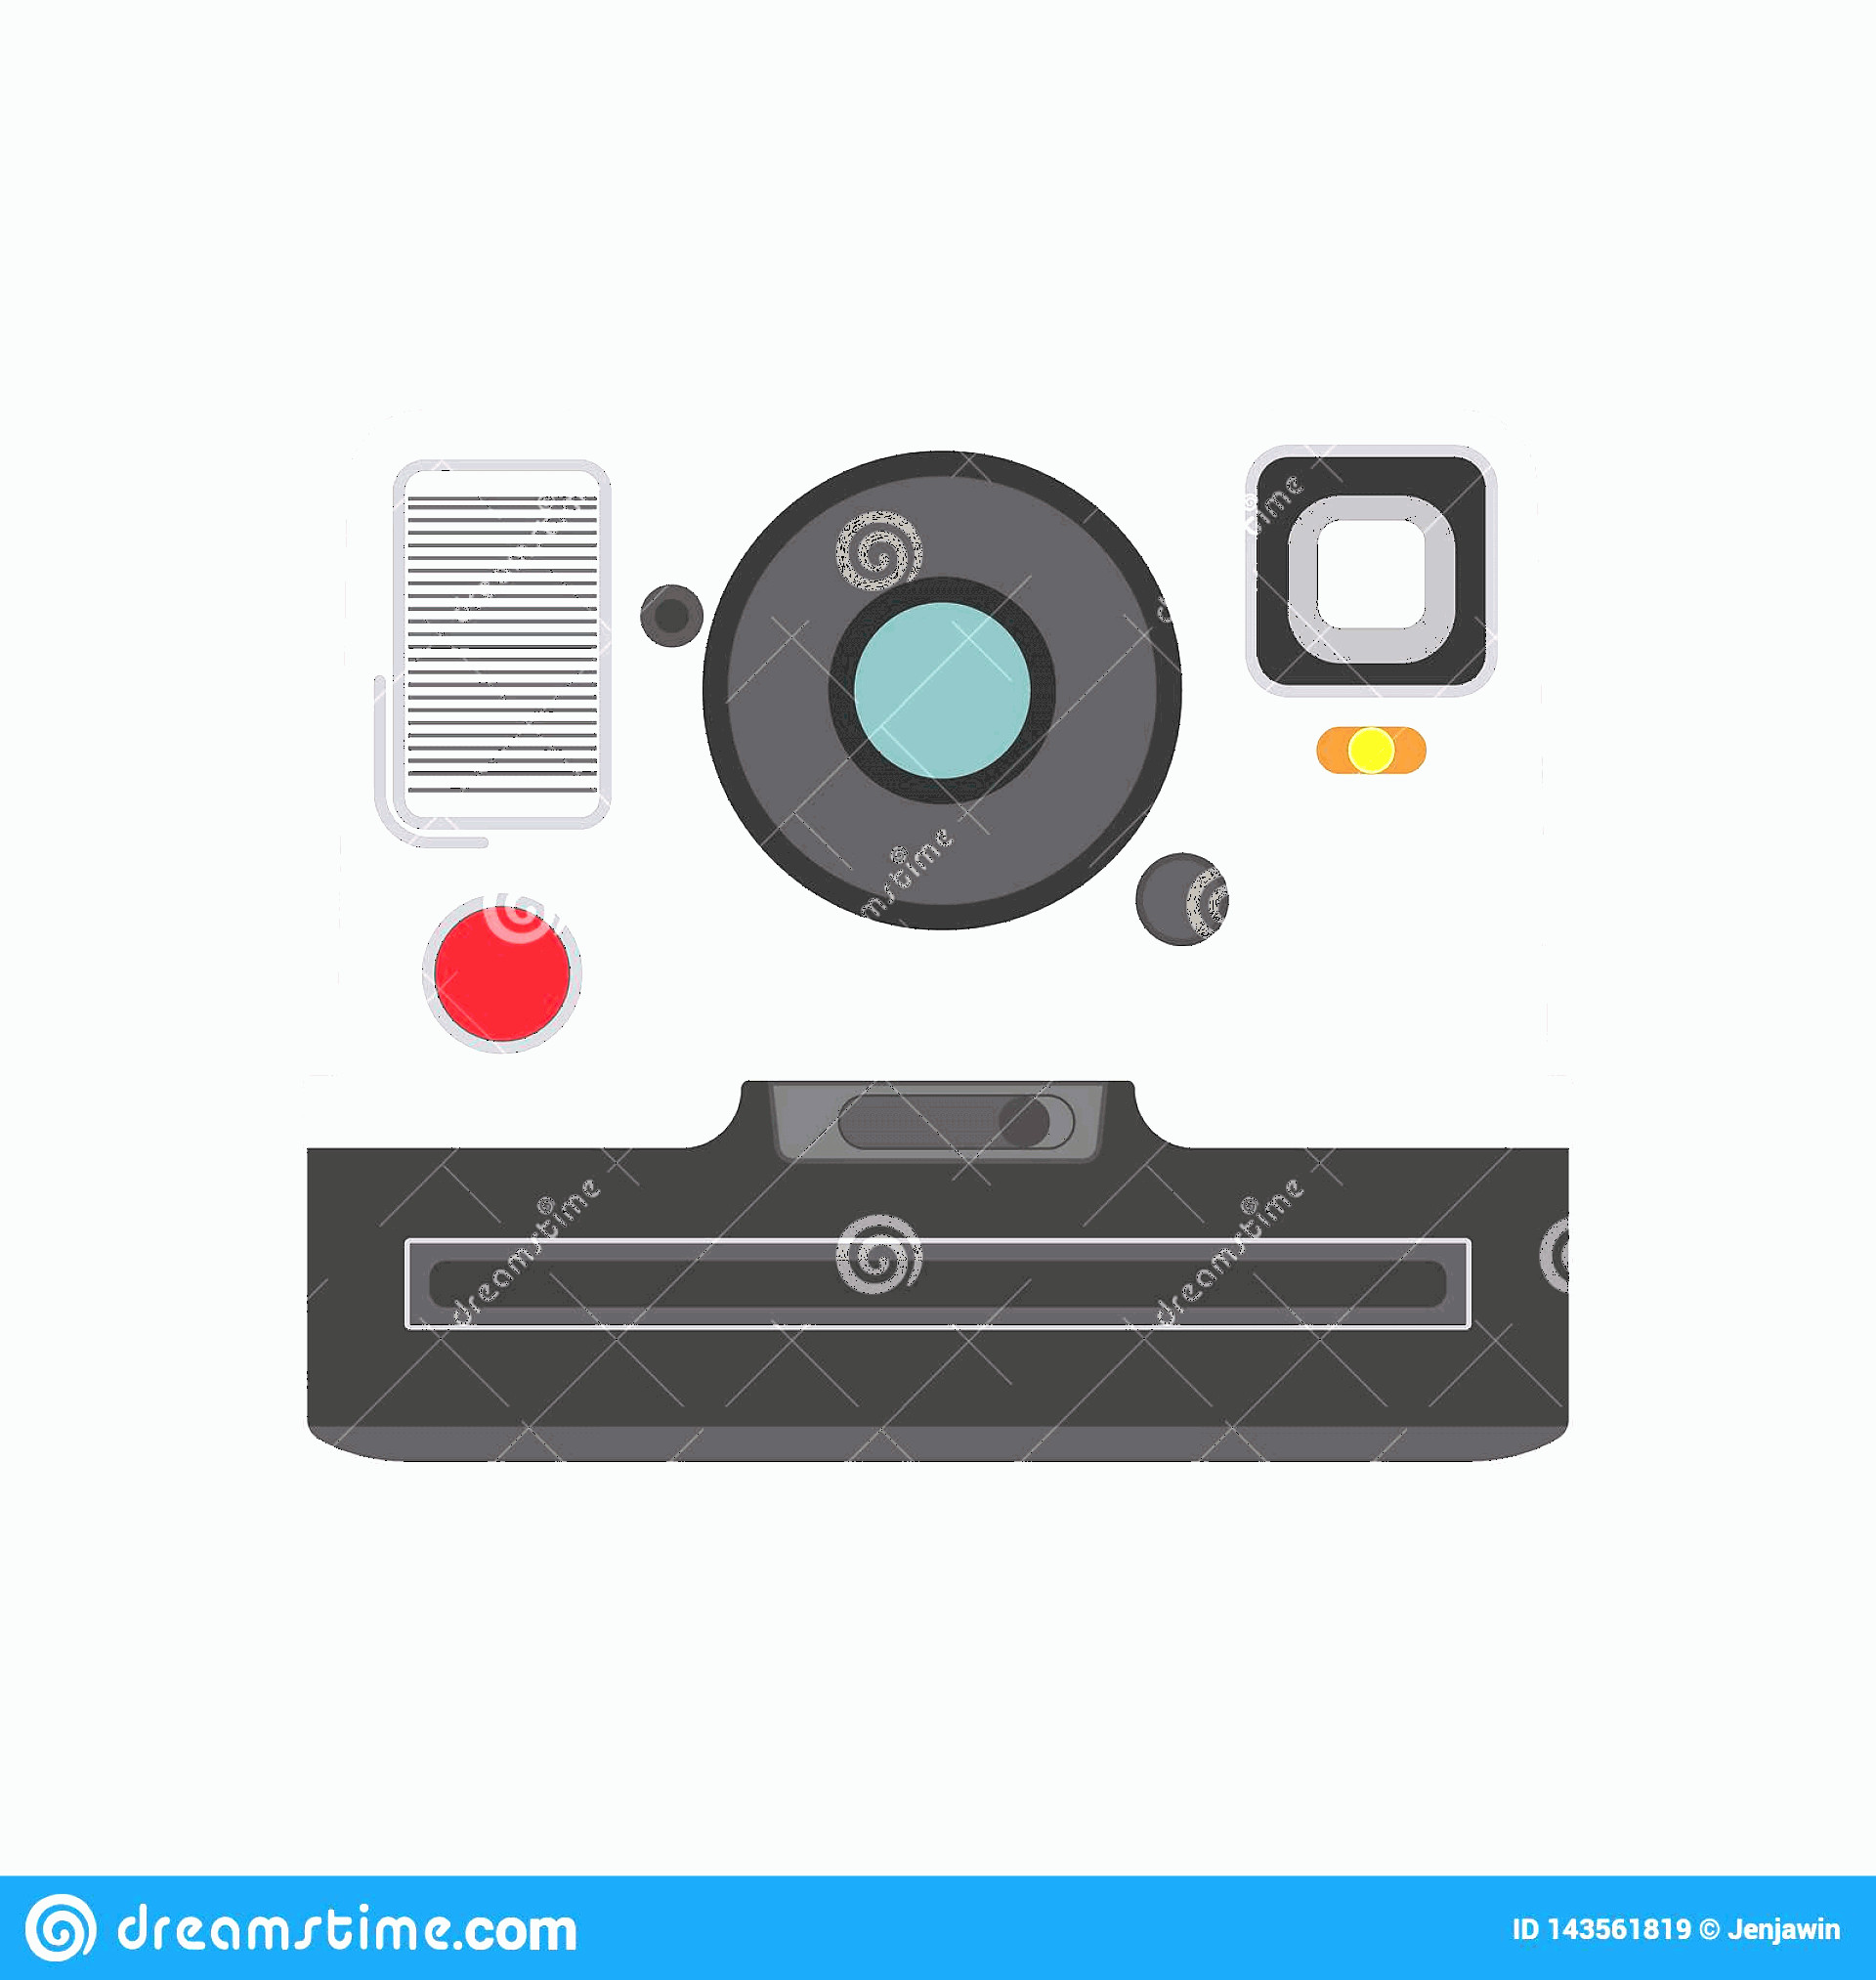 Classic Camera Vector: Old Classic Photo Camera Vector Eps Flat Style Old Photo Camera White Background Old Polaroid Photo Camera Vector Eps Old Photo Image